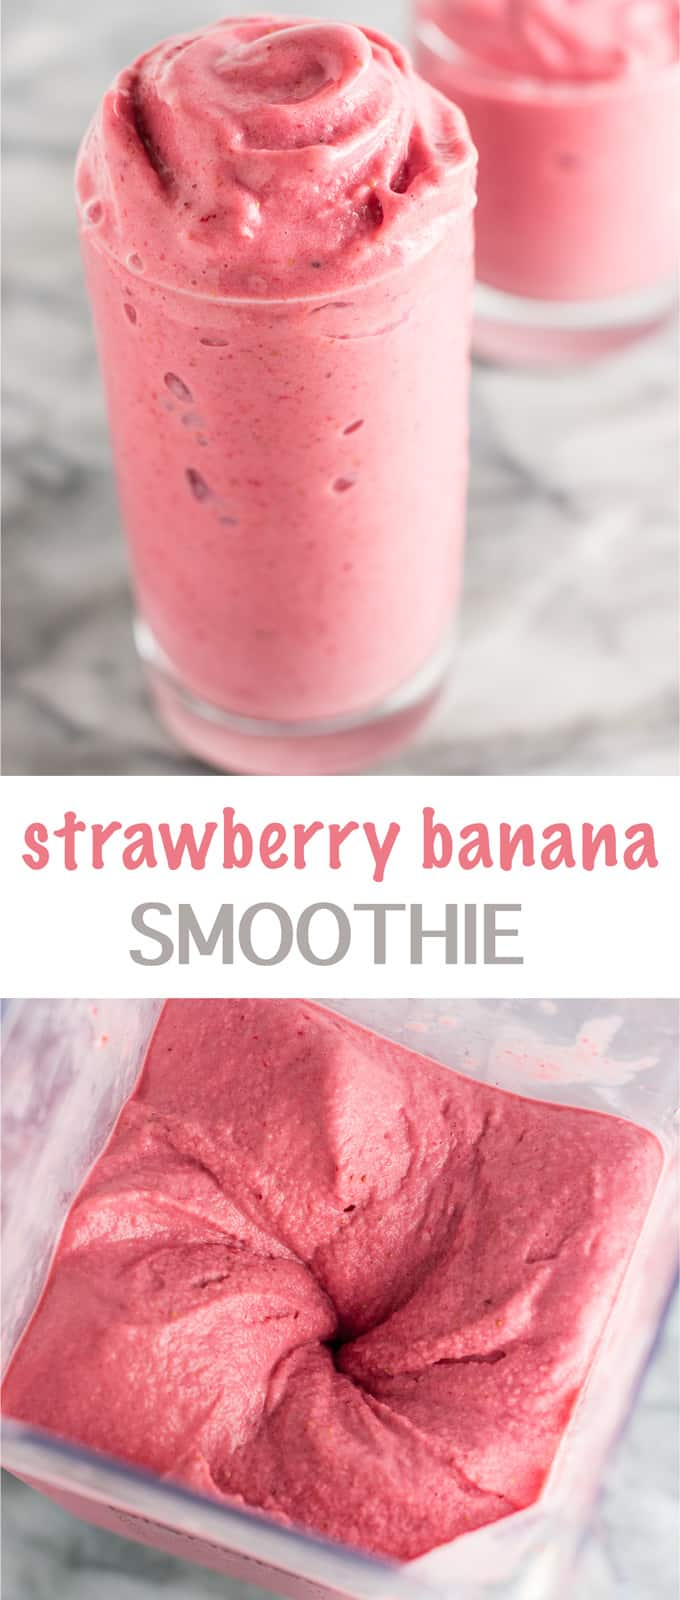 Healthy strawberry banana smoothie recipe with just 3 ingredients! This seriously tastes like ice cream - so good! #strawberrybananasmoothie #healthy #healthysmoothie #breakfast #dessert